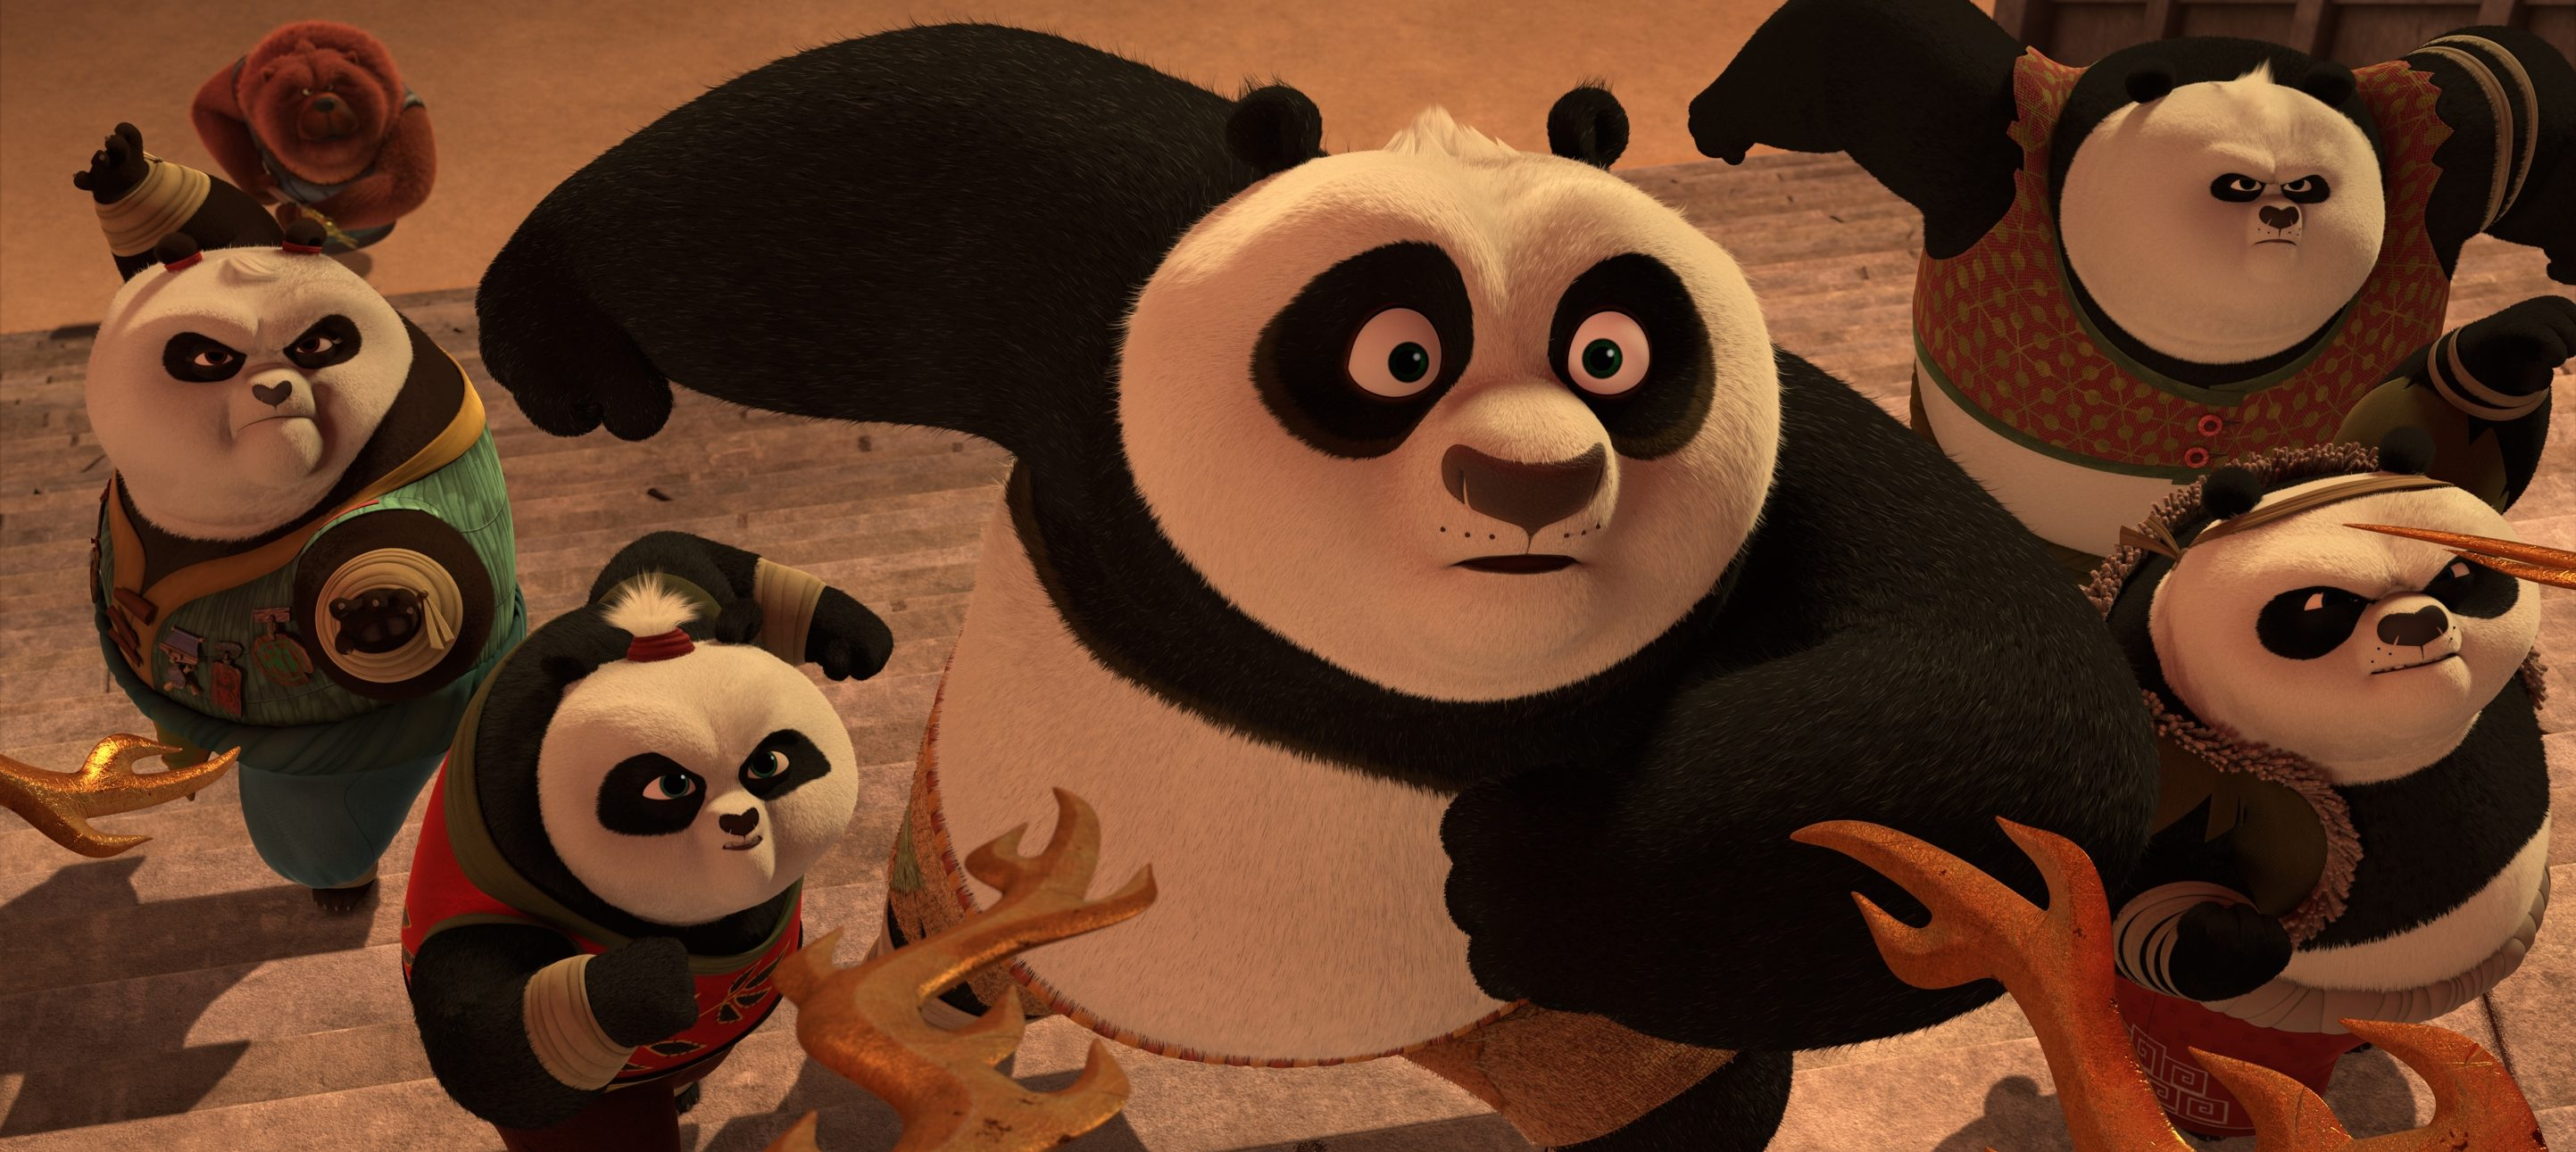 Kung Fu Panda The Paws Of Destiny Season 2 Trailer Released Film